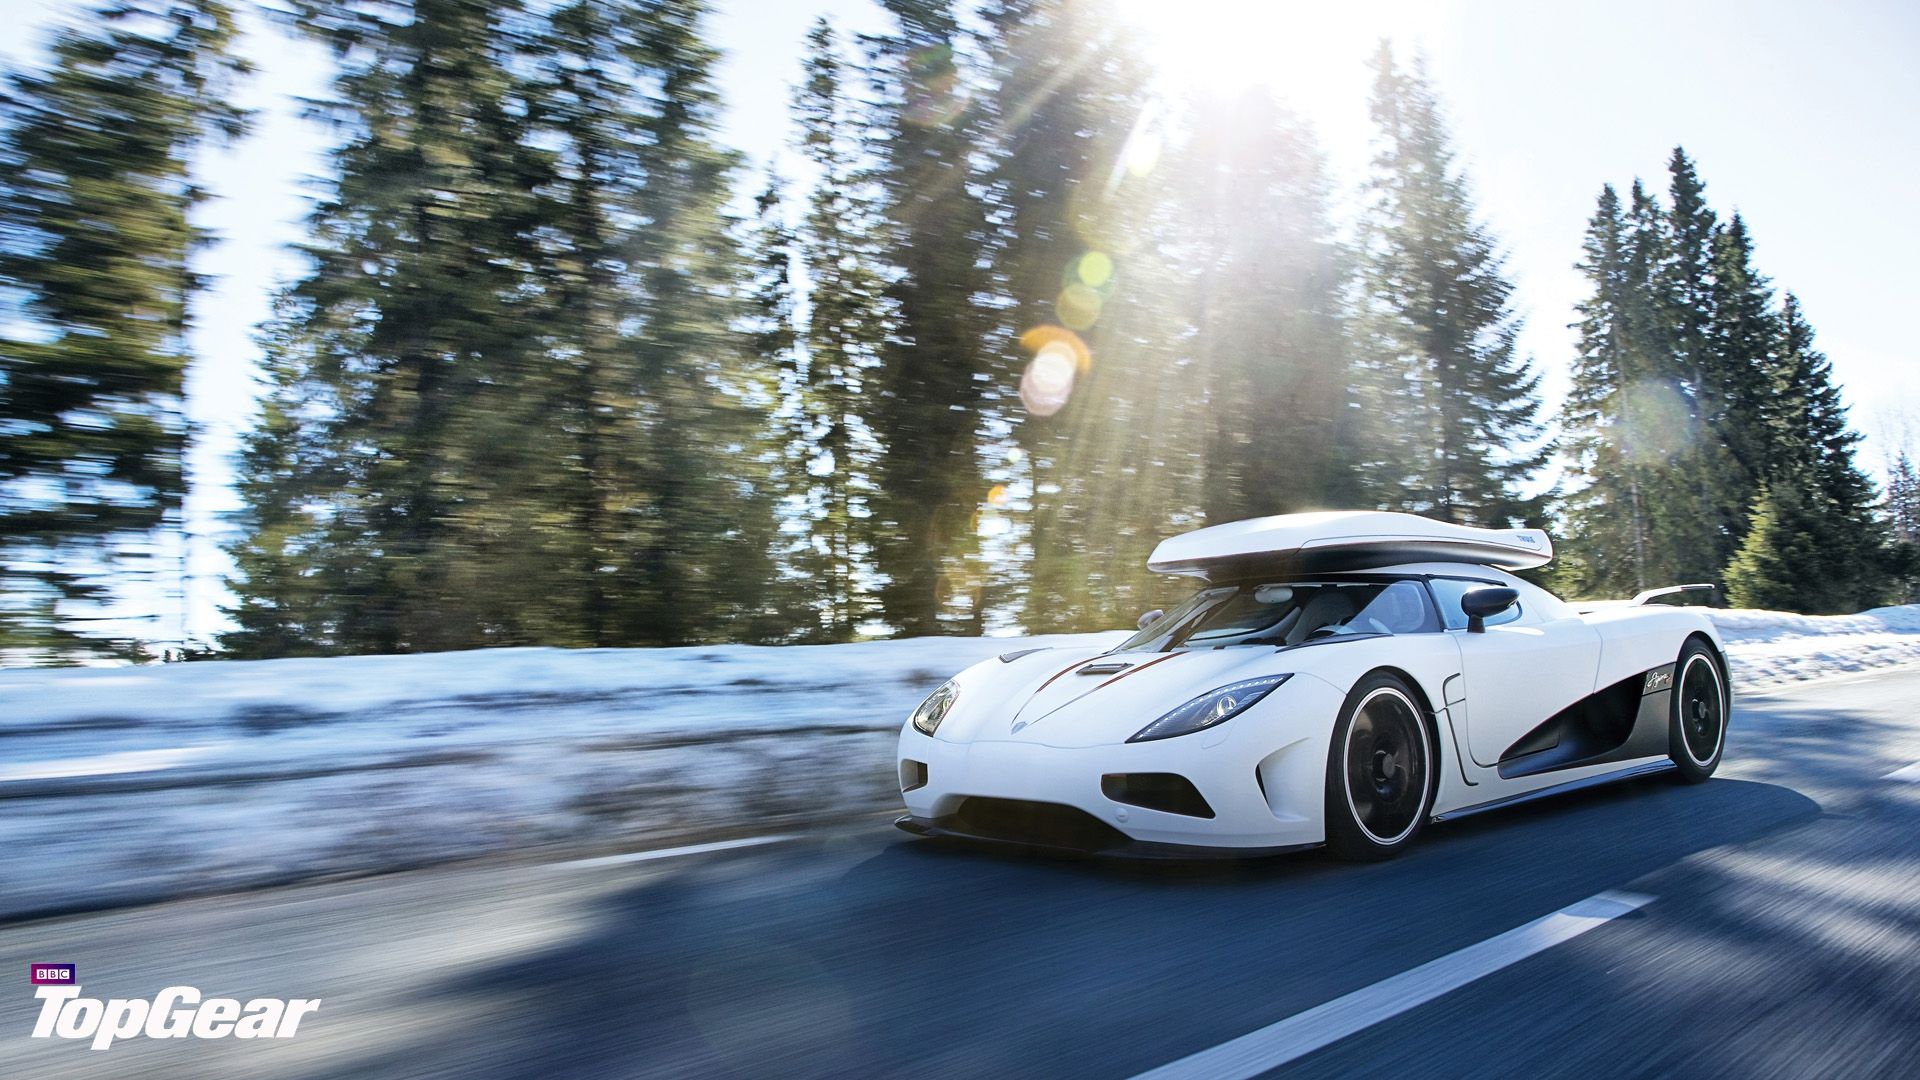 Koenigsegg Agera R Wallpapers 1080p Koenigsegg Car Car Images